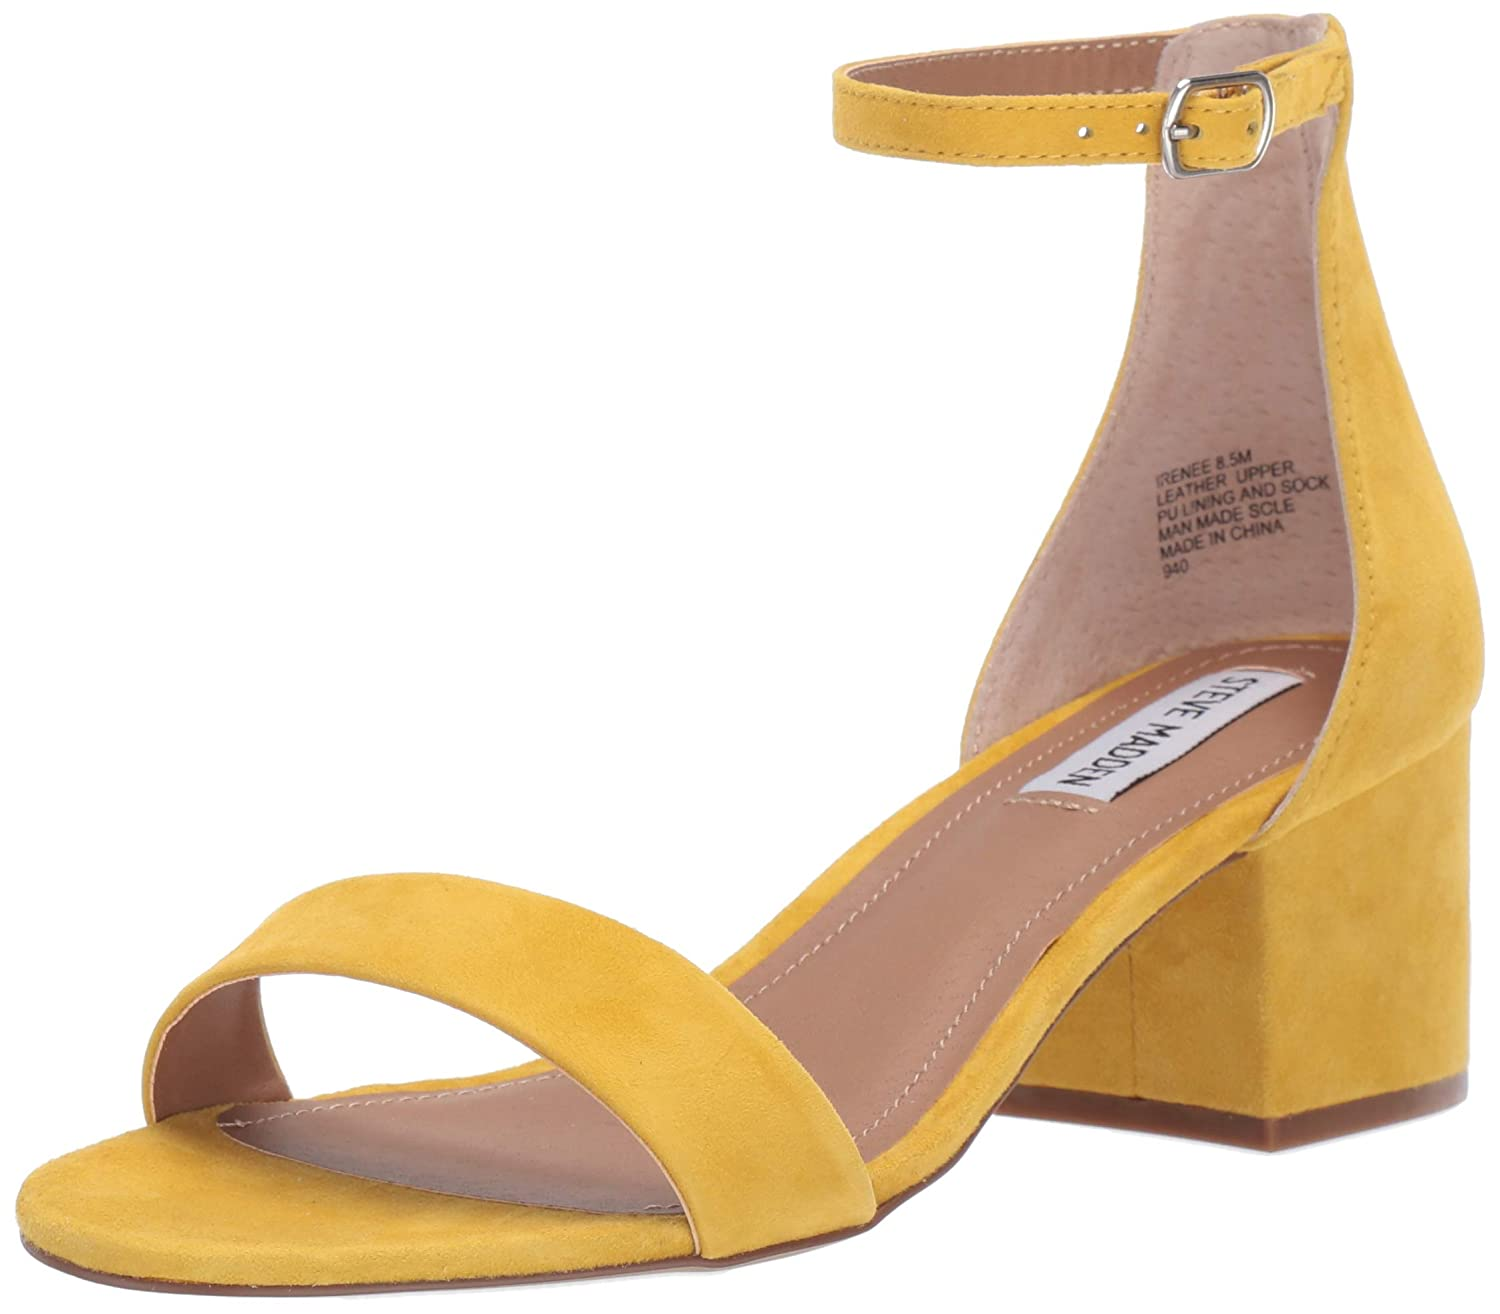 【全商品オープニング価格 特別価格】 Steve Madden M Strap Womens Toe Irenee Open Toe Formal Ankle Strap Sandals B07K31CSGF 10 M US|ひまわり(Sunflower) ひまわり(Sunflower) 10 M US, 射水郡:a121be53 --- en.mport.org